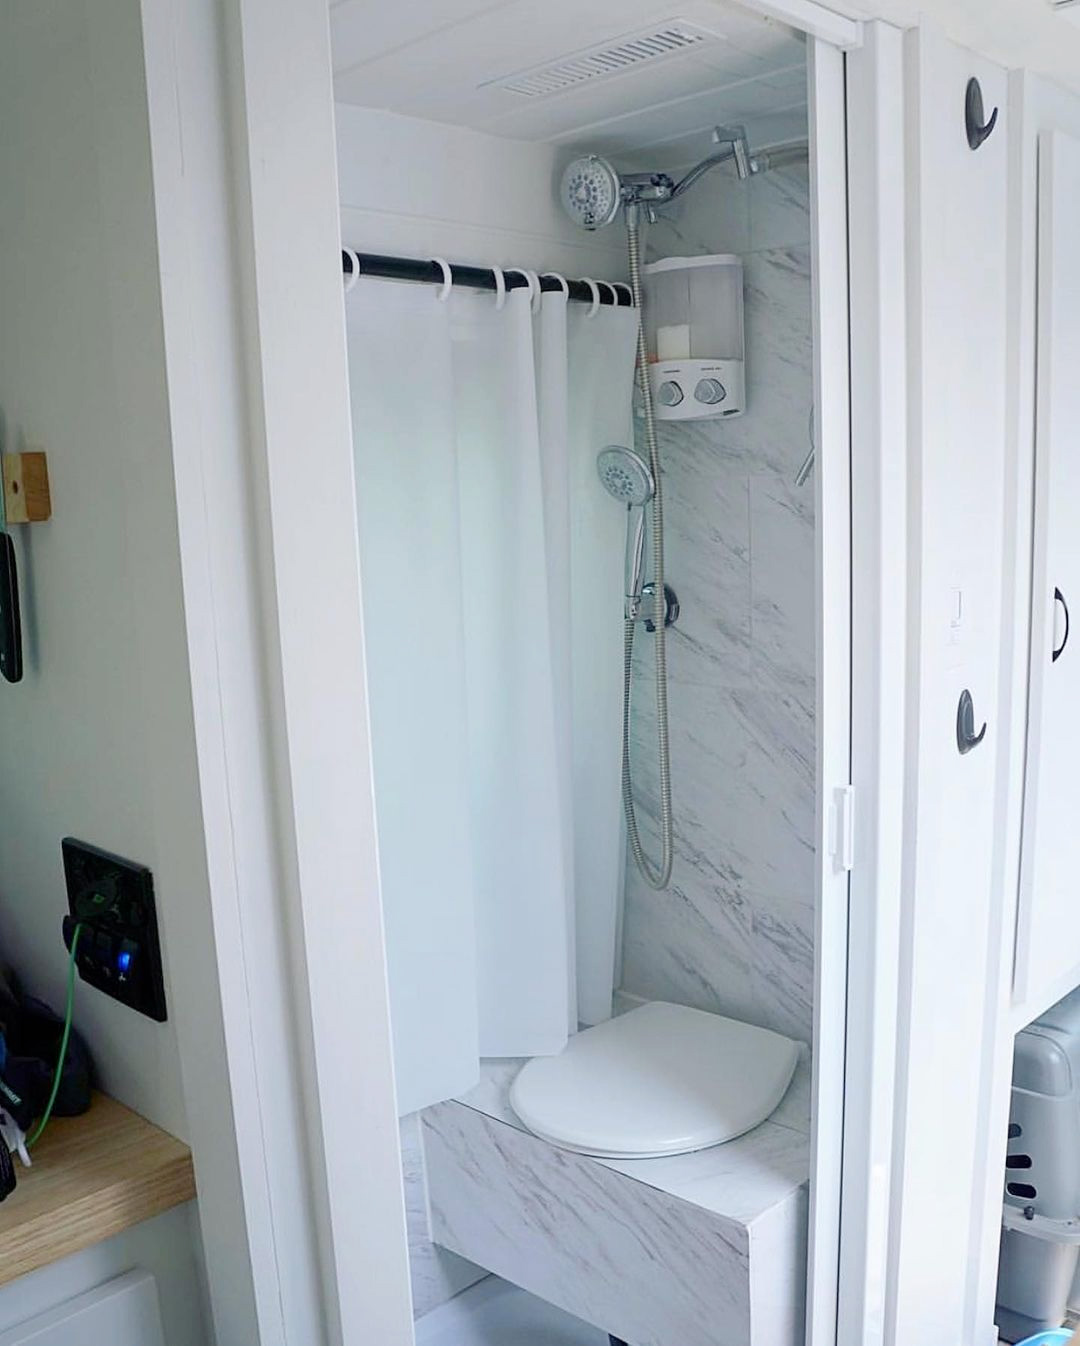 camper van with a toilet and shower wet room inside